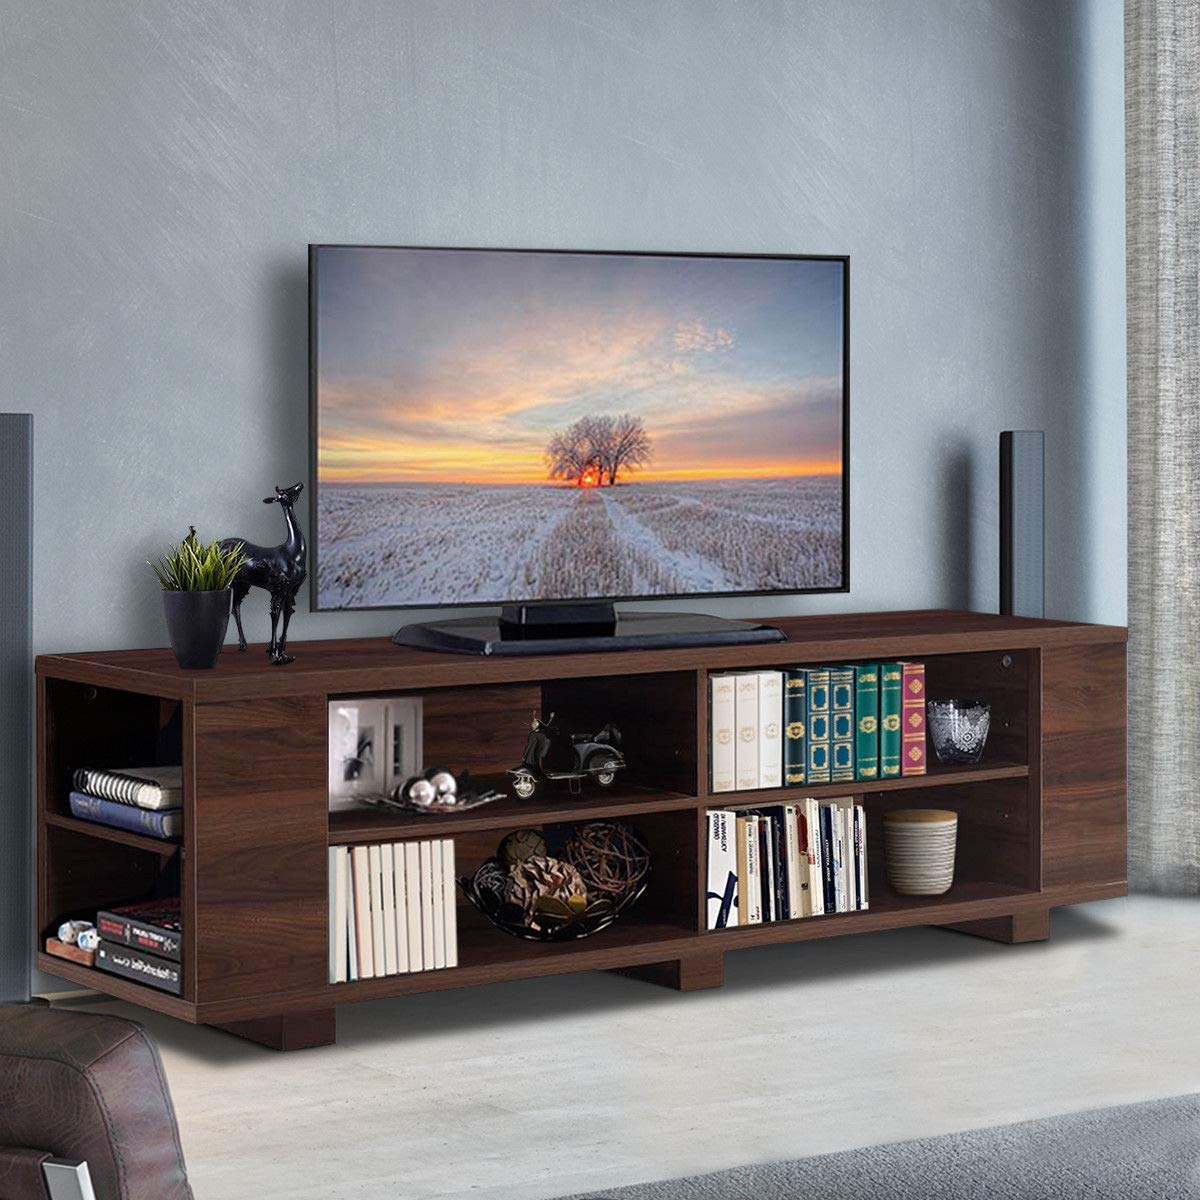 Amazon com tangkula tv stand modern wood storage console entertainment center for tv up to 59 home living room furniture with 8 open storage shelves